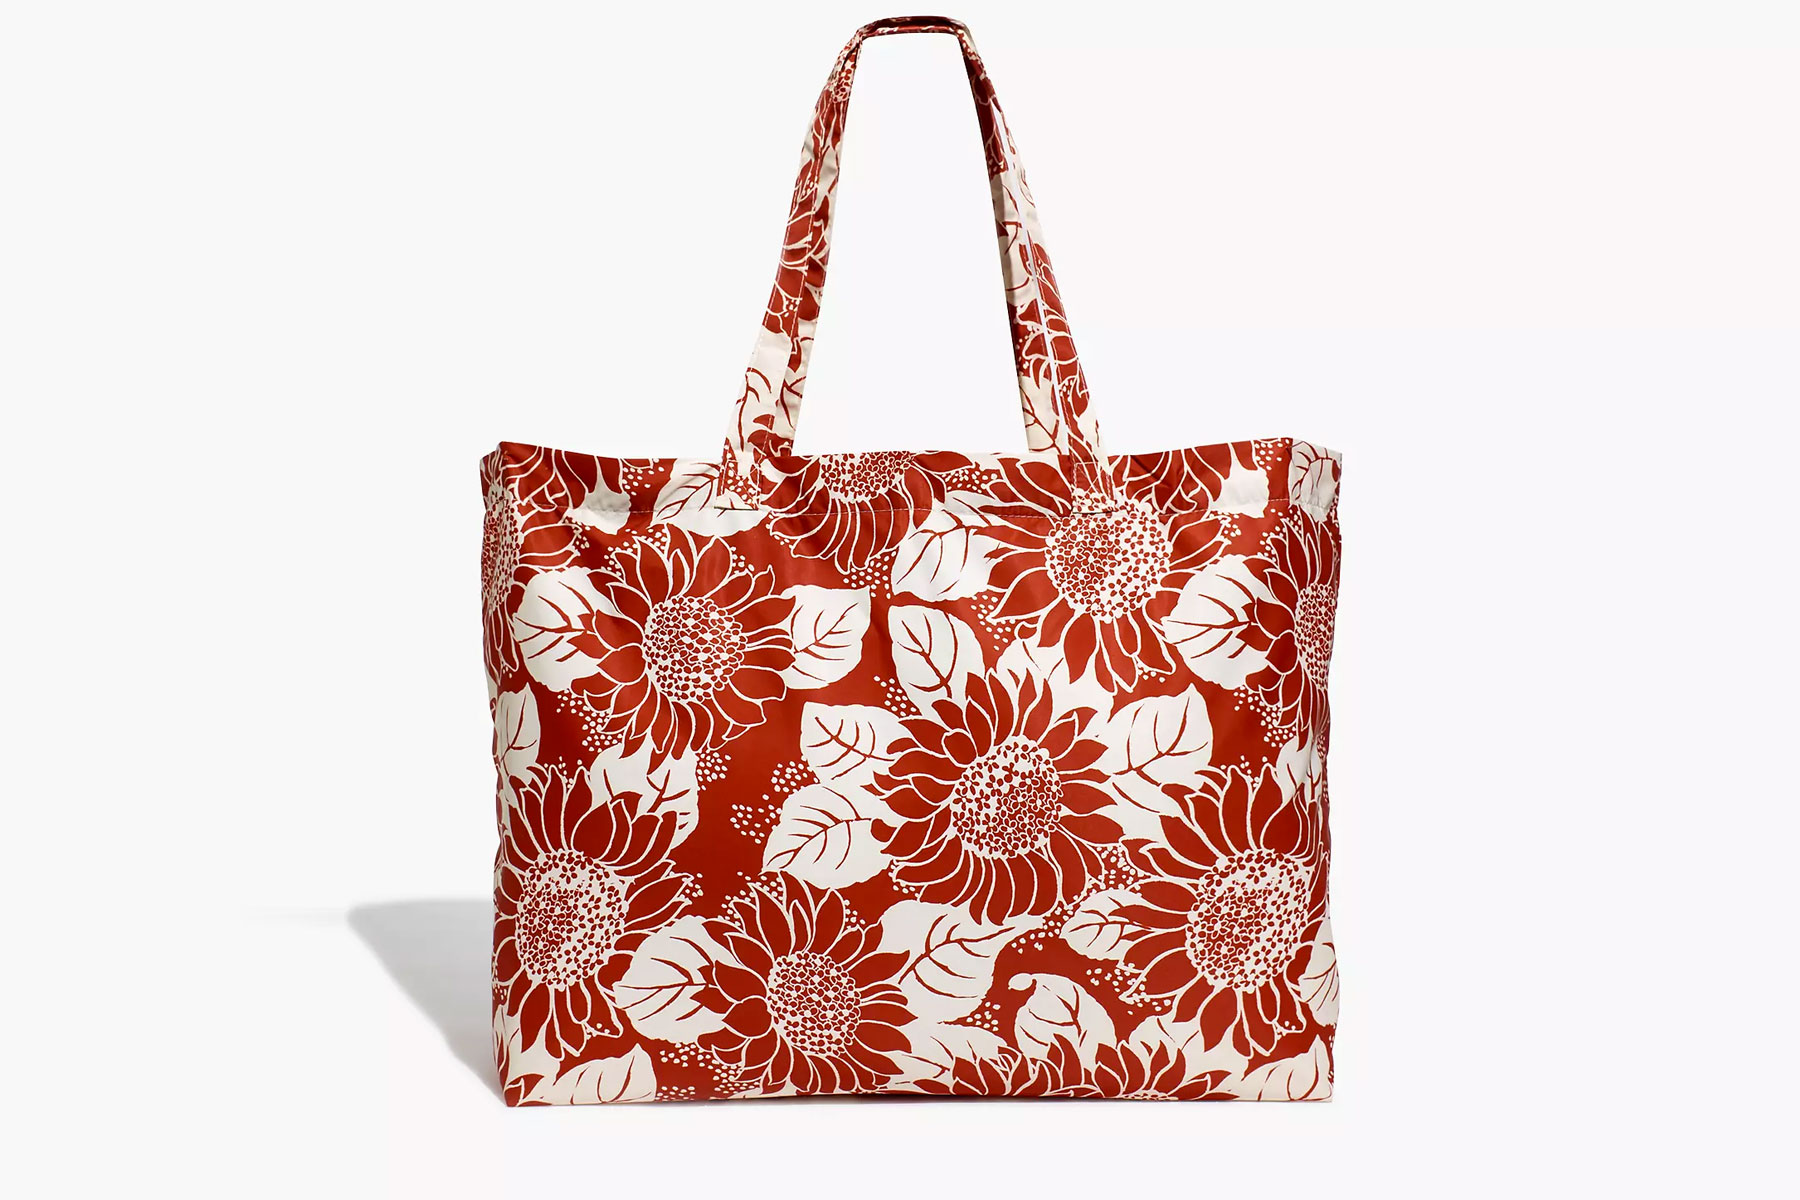 Red and white floral nylon tote